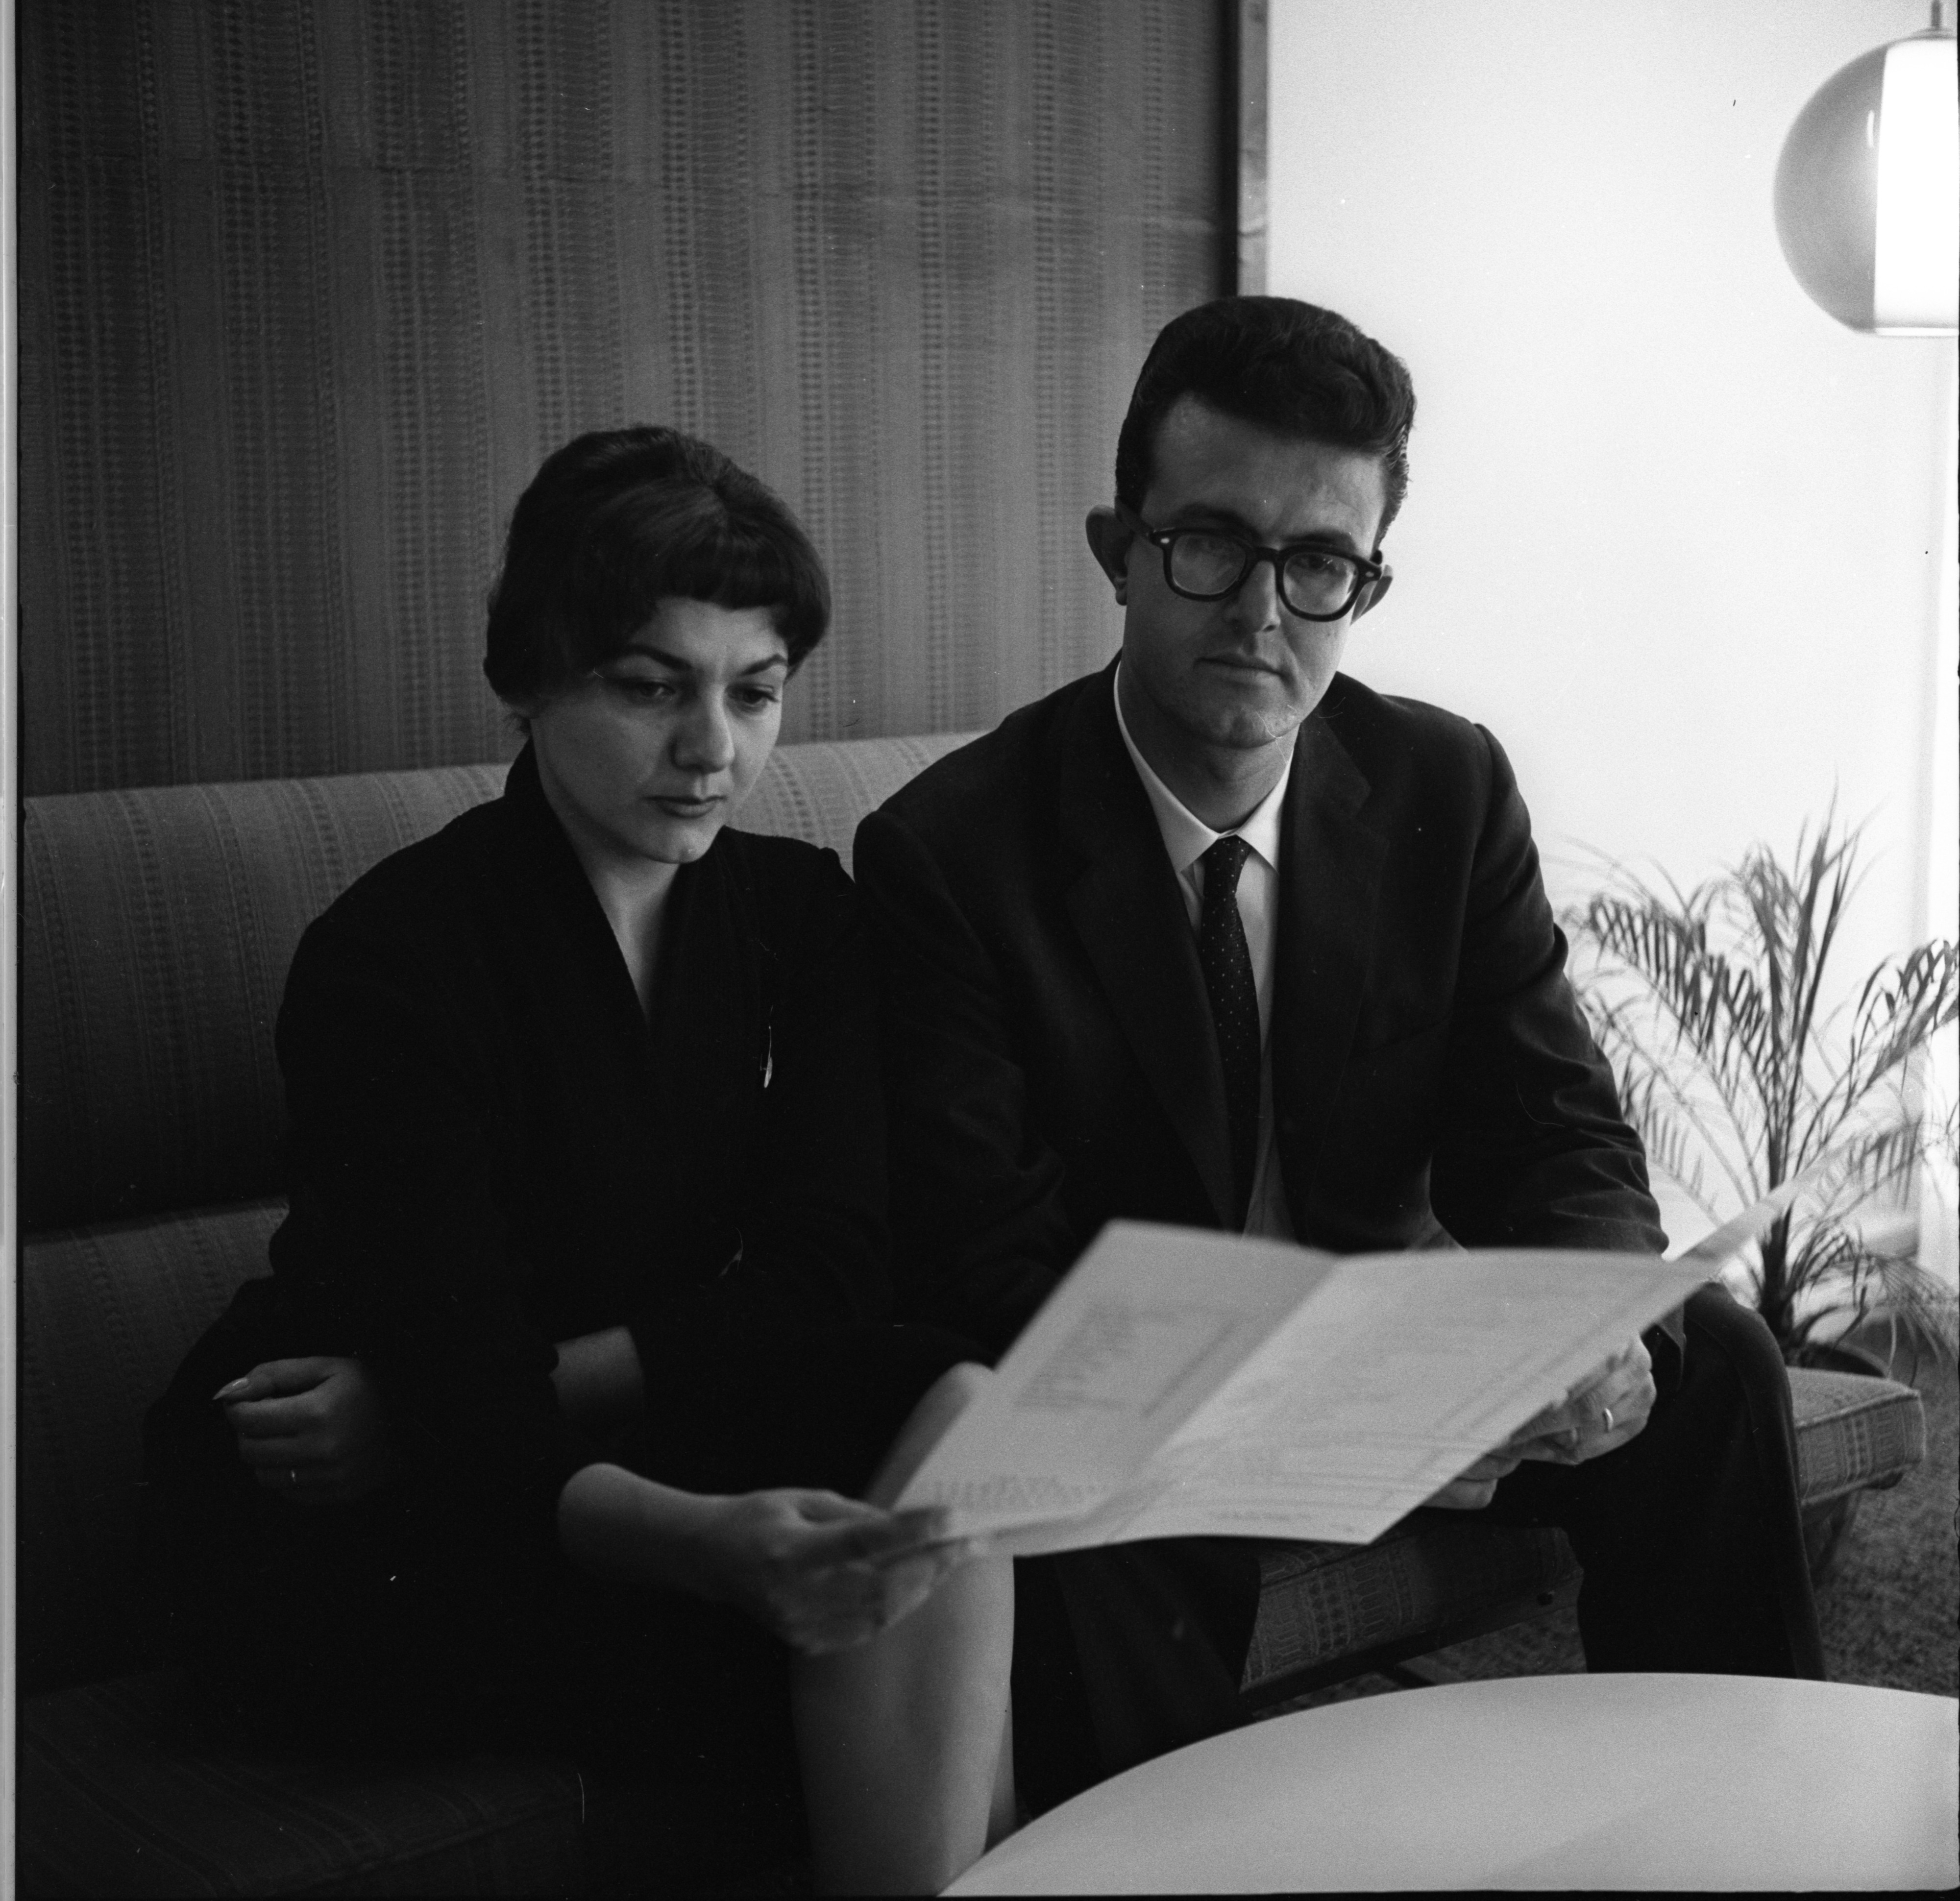 Mr. & Mrs. Fenerli Look Over Their Restaurant, The Rubaiyat's, Menu, October 6, 1960 image